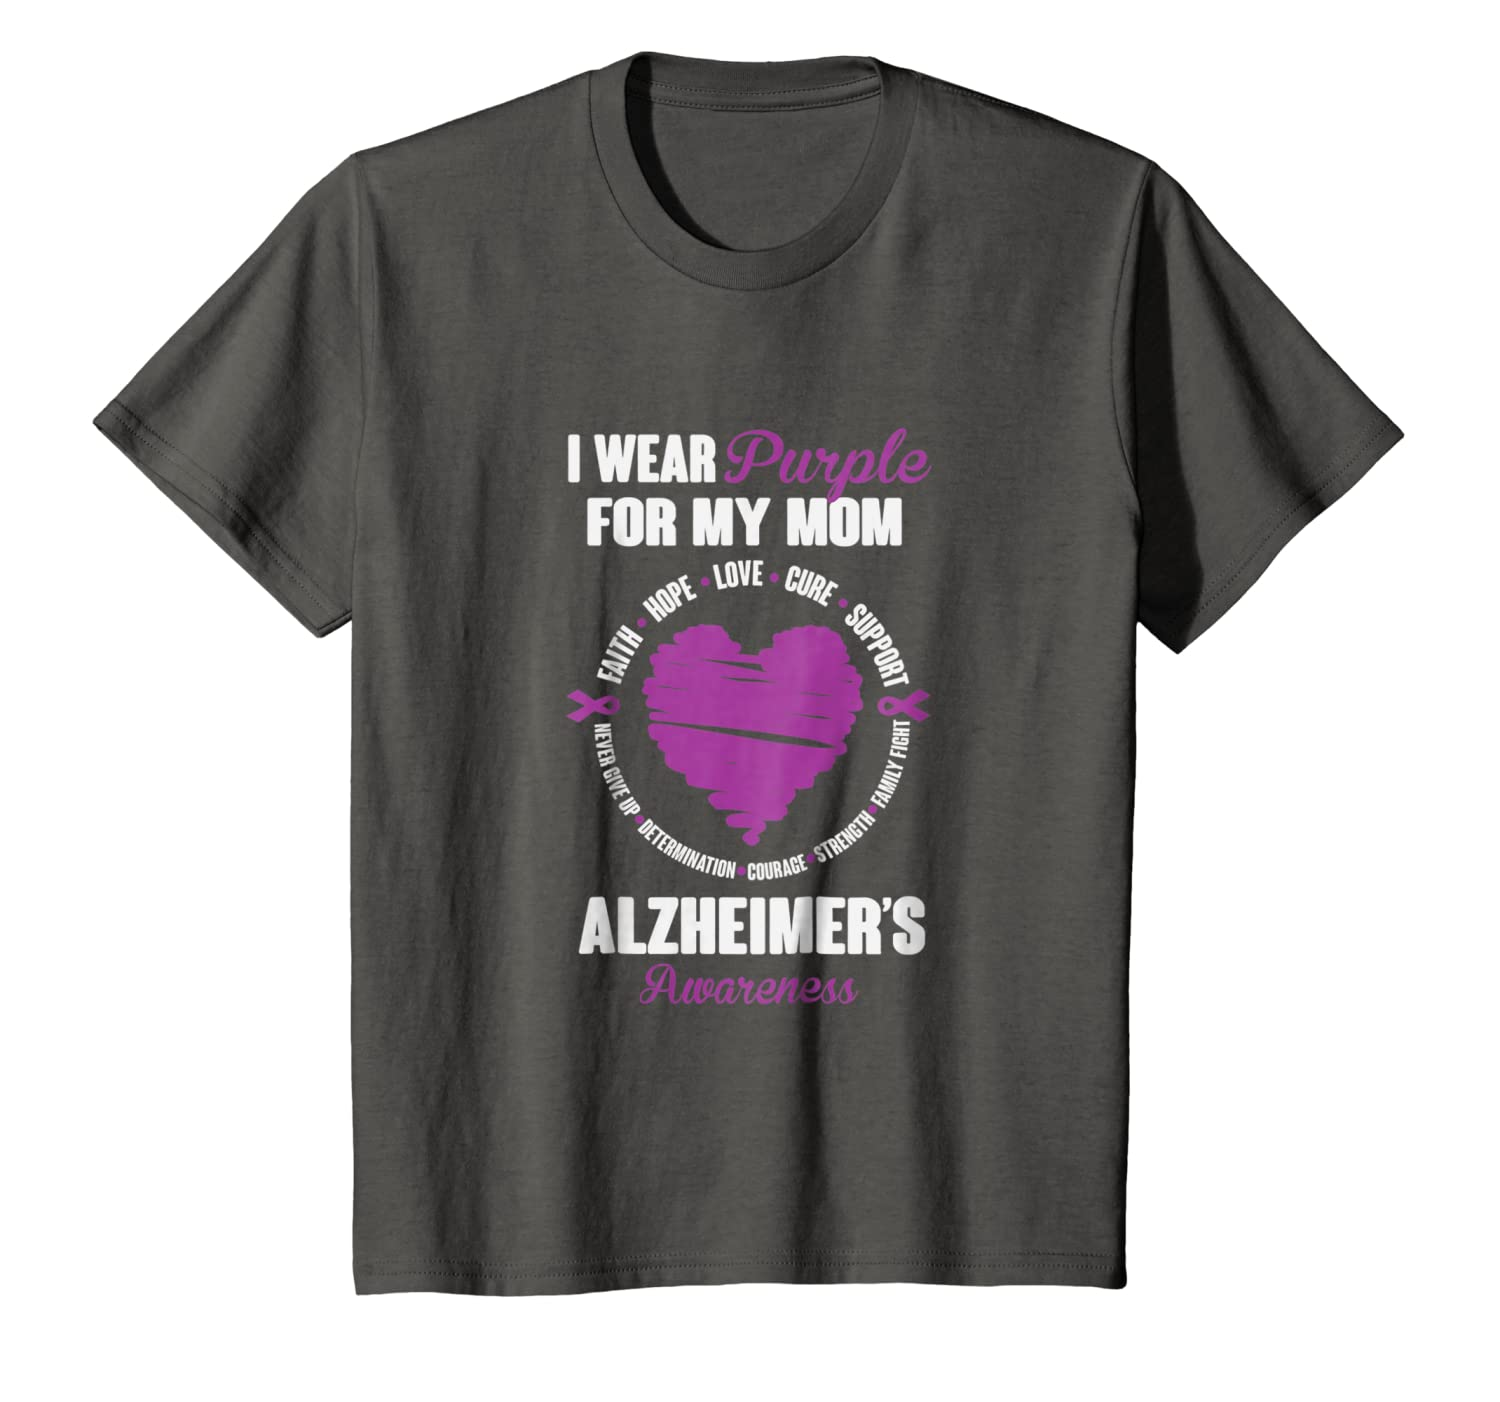 I Wear Purple For My Mom Alzheimers Awareness T-Shirt